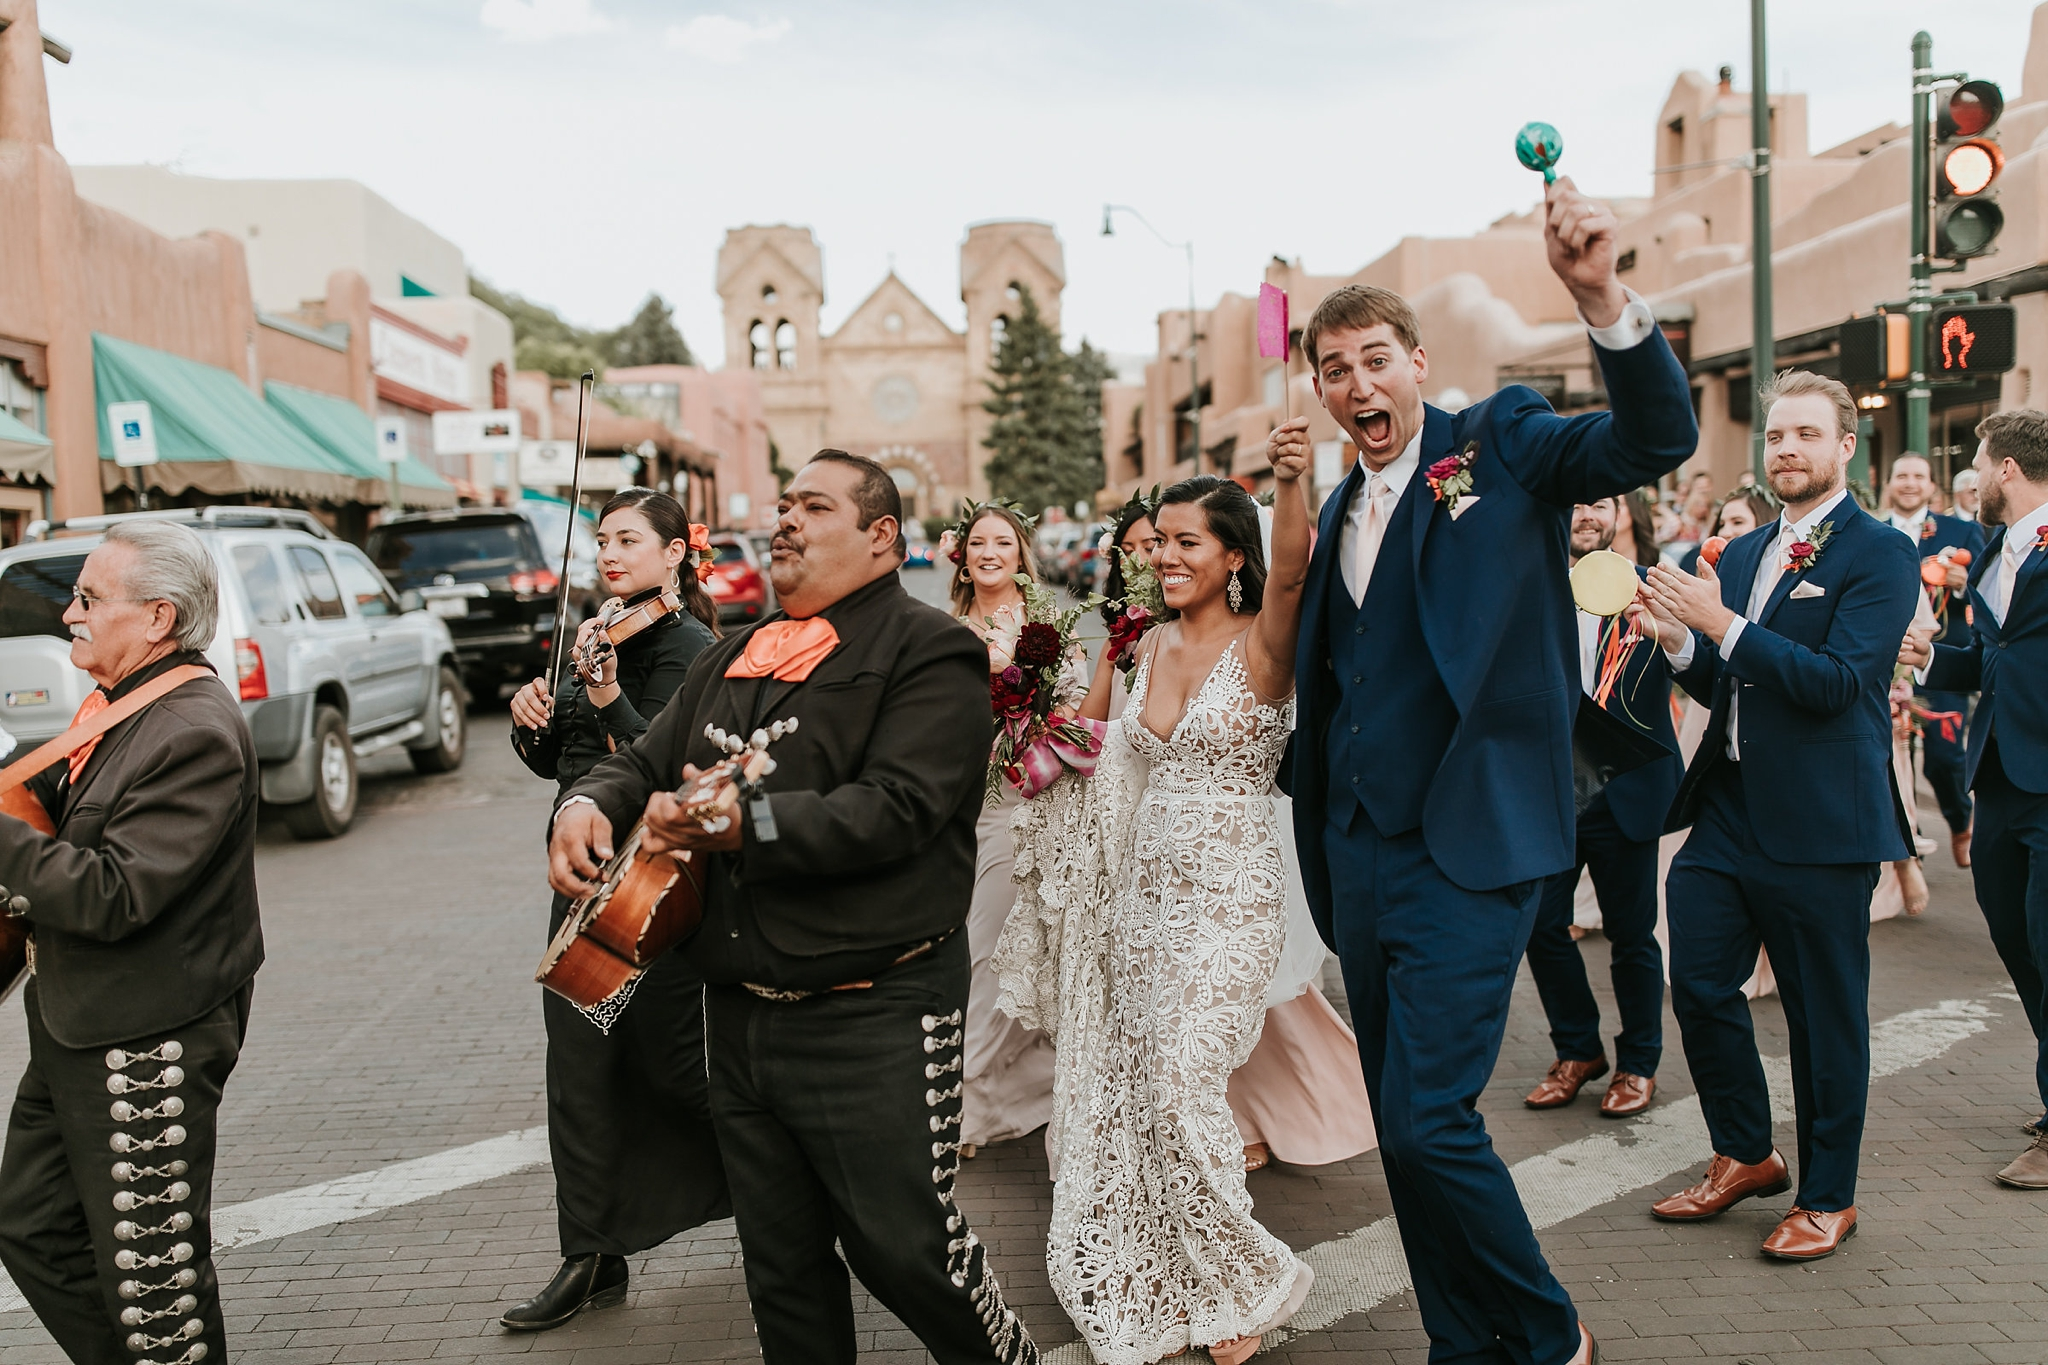 Alicia+lucia+photography+-+albuquerque+wedding+photographer+-+santa+fe+wedding+photography+-+new+mexico+wedding+photographer+-+new+mexico+wedding+-+santa+fe+wedding+-+albuquerque+wedding+-+southwest+wedding+traditions_0003.jpg